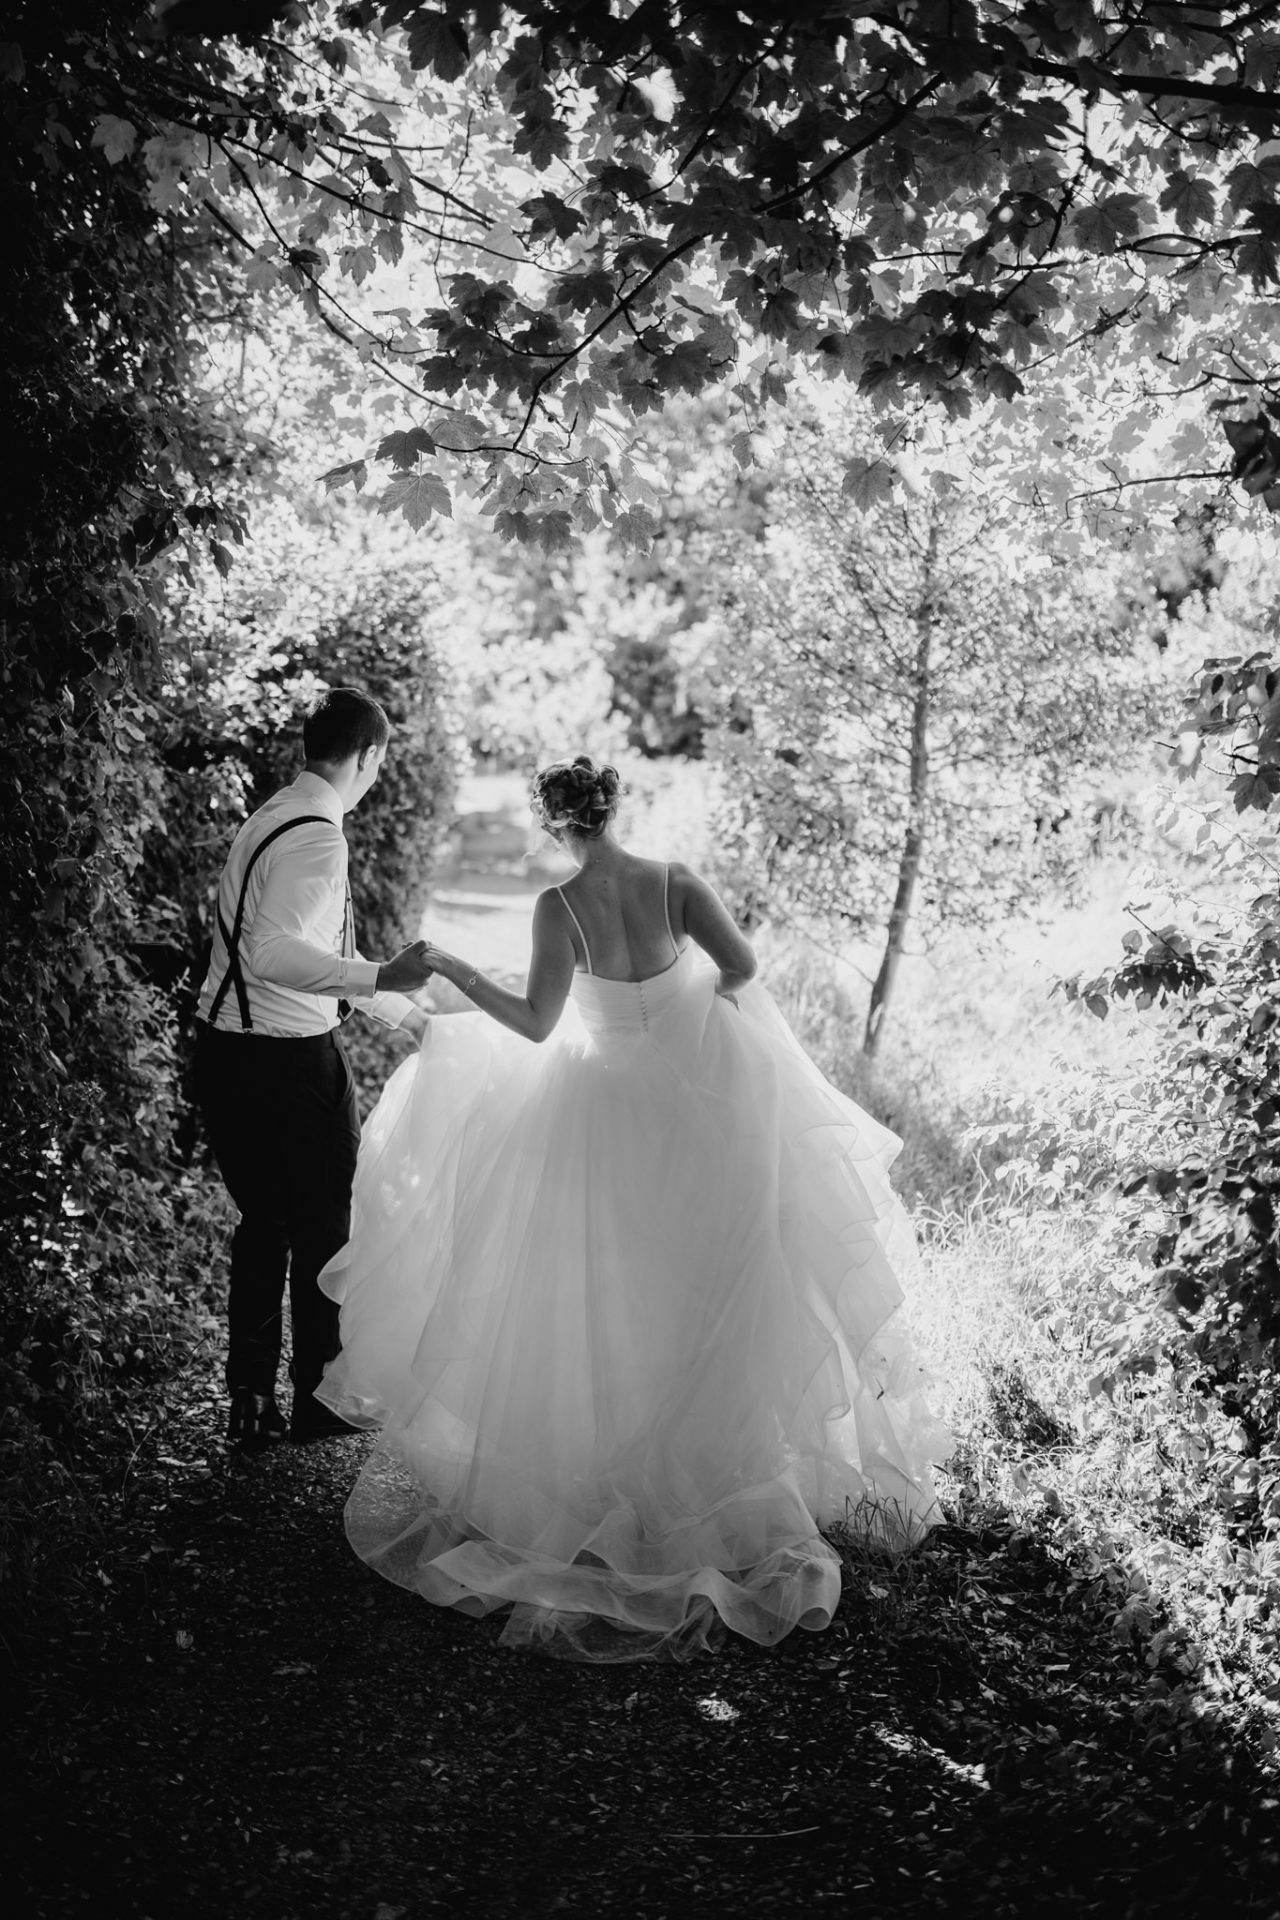 bride and groom holding hands walking down a path